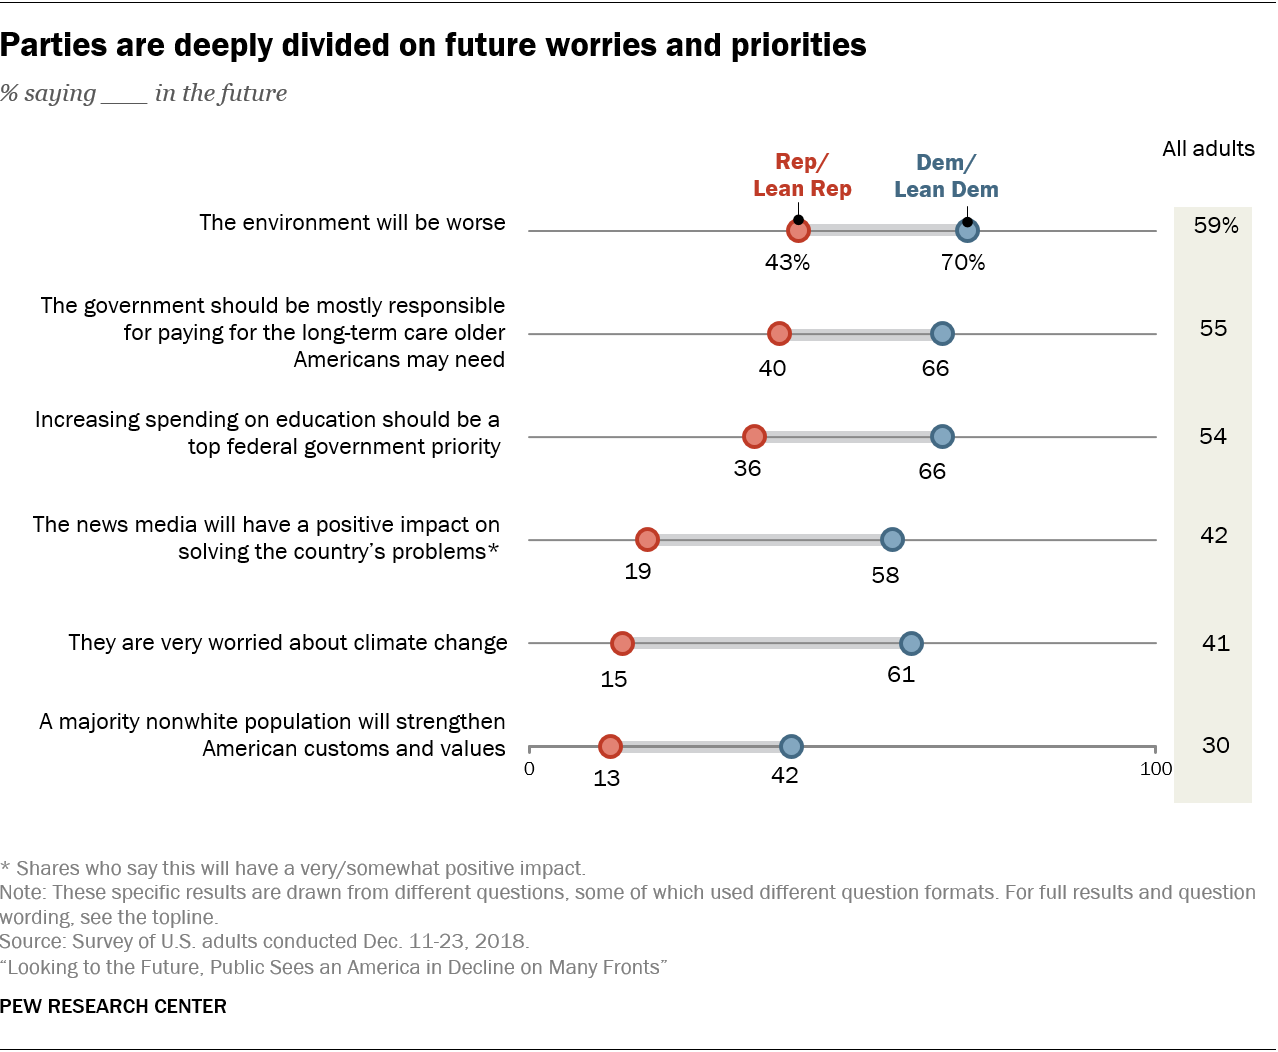 Parties are deeply divided on future worries and priorities